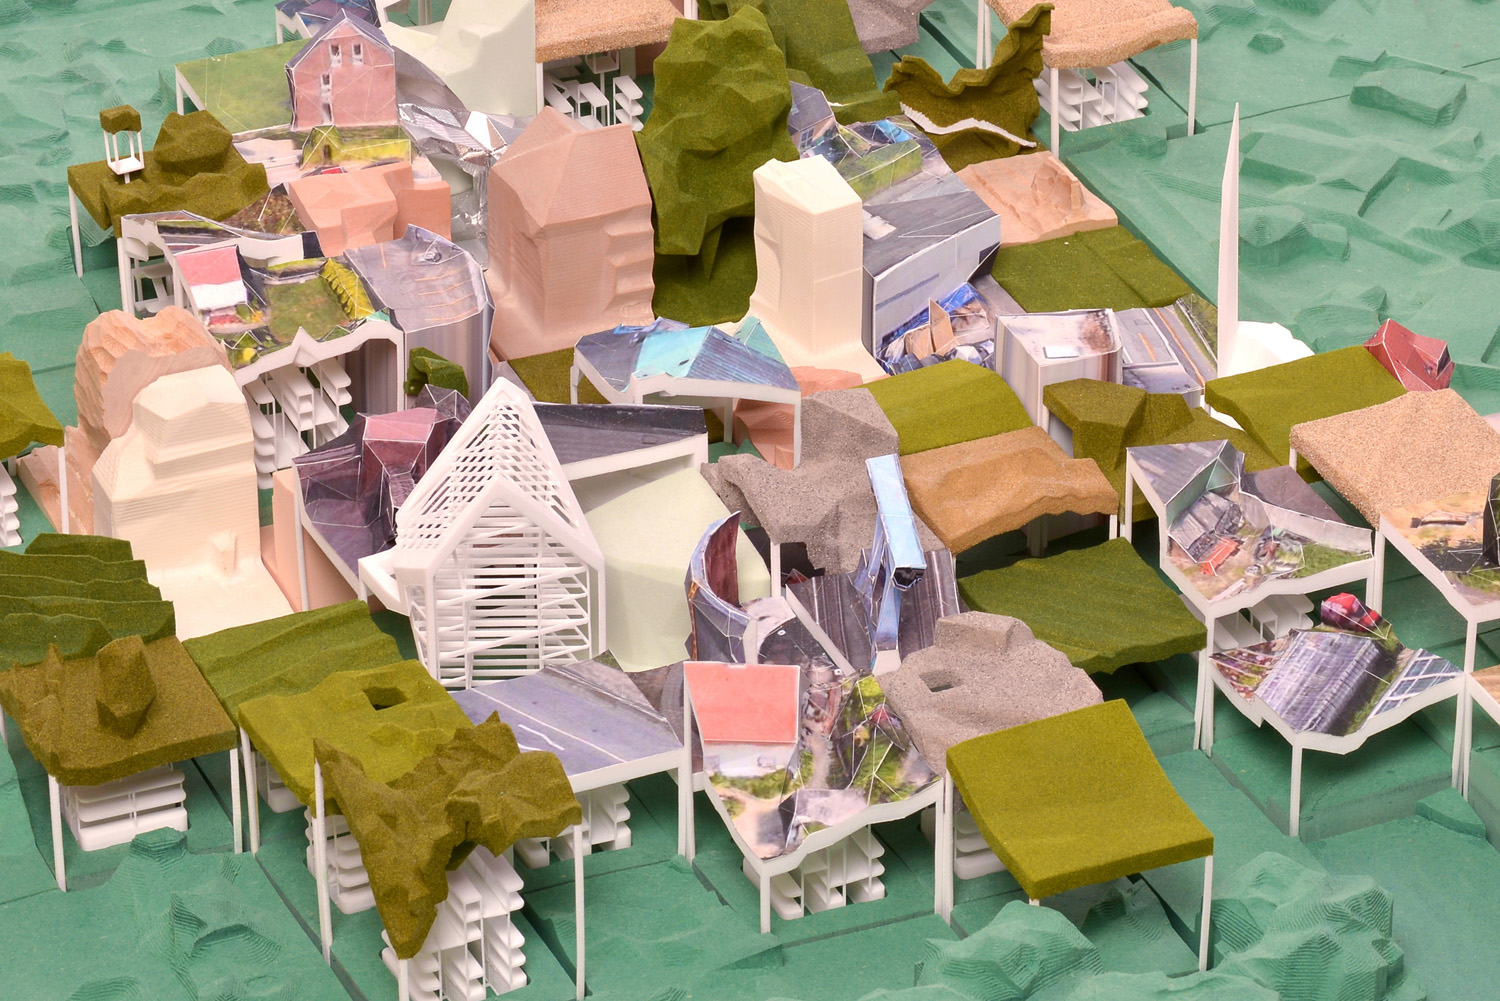 Low Res City – The Phygital Warehouse, Y5. Tutors: Prof. Laura Allen and Prof. Mark Smout . A large scale model of 'Low Res City' served as testbed to celebrate and evaluate existing and novel ways of fabrication. Using photogrammetry on screenshots allowed me to obtain low-resolution pointclouds of the whole city. Pinpointing where to 'grab' data, the intersections of a coordinate grid overlaying the city perimeter limited my agency as curator. Bit by bit a compressed image of Hamburg got physicalised, using newly developed techniques – Augmented Carving and Papercasting –, paired with established digital fabrication technologies, such as robotic milling and 3D-printing. Challenged by the recomposition of mined and and physicalised specimens, Low Res City forms a provocation towards the image of the city: grabbed from the sky, can a shed in the backgarden, a street corner, a field of crops become truer representatives of the city fabric and its phygital moments?